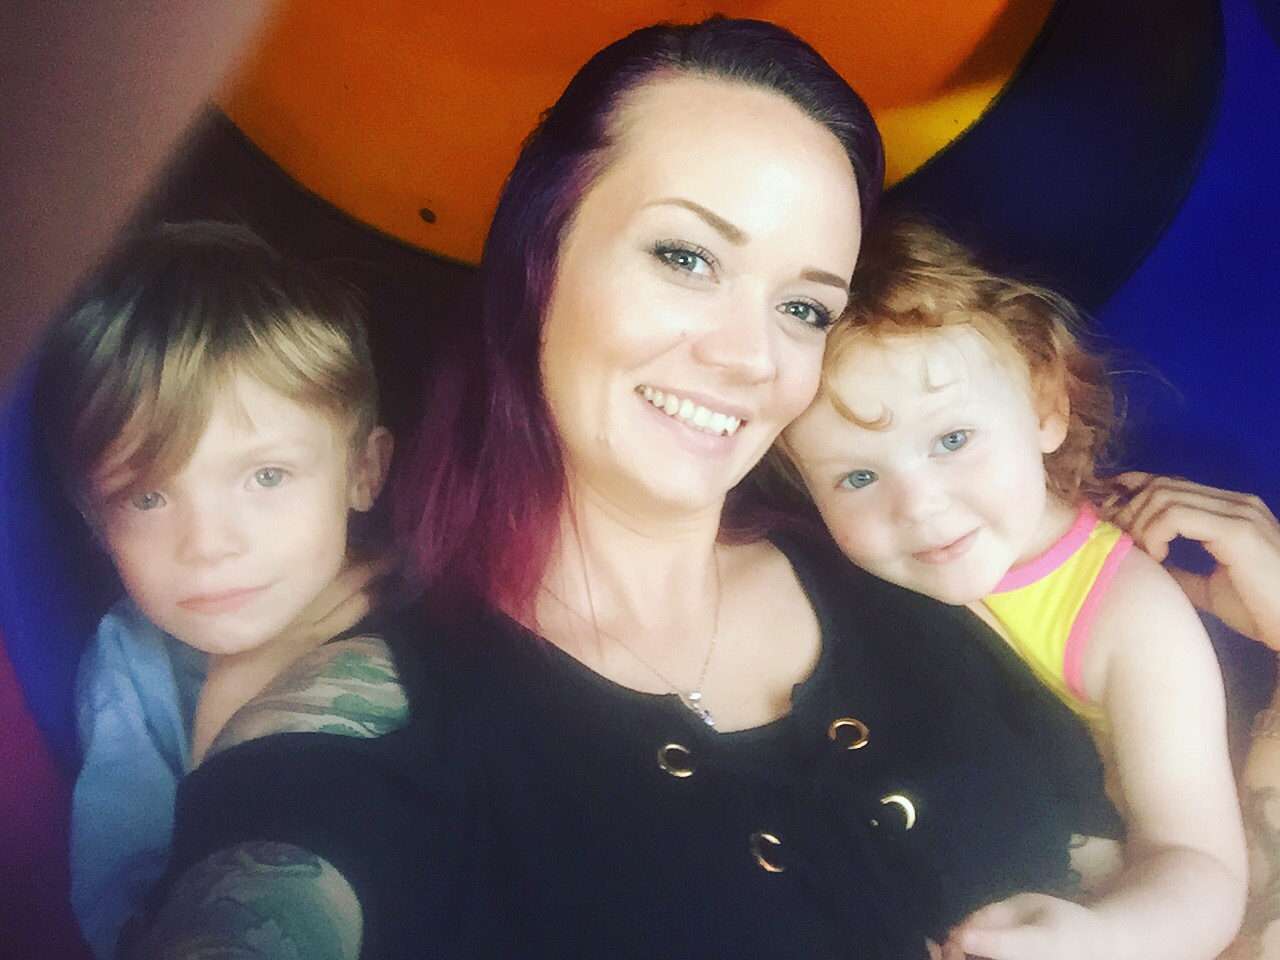 Audrey Lynn and her two children